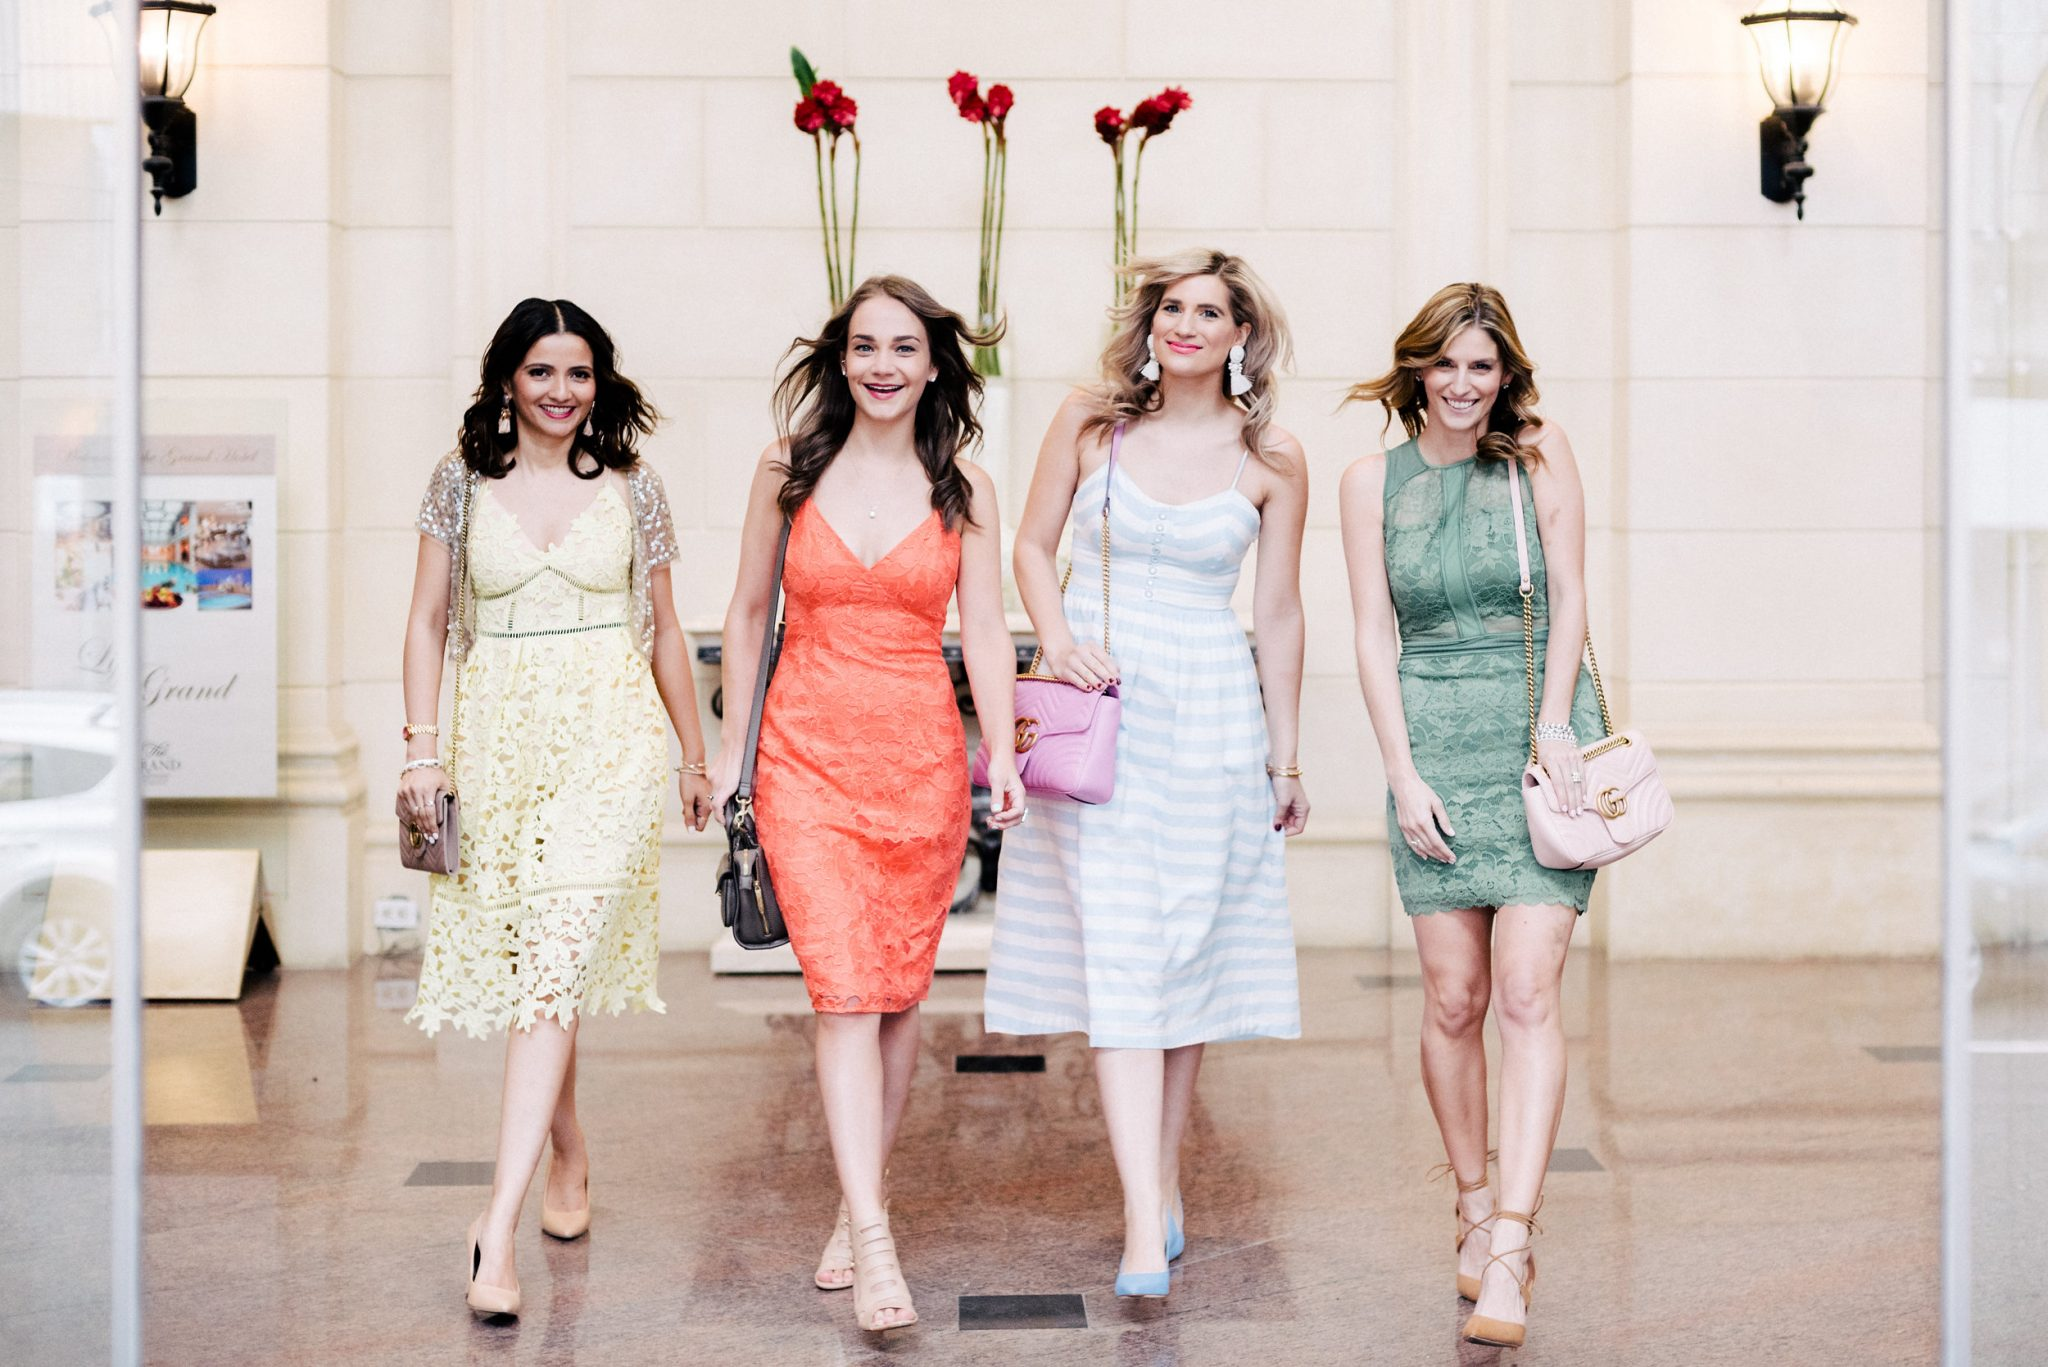 Guess Dresses for Spring Ultimate Girls Weekend Sparkleshinylove